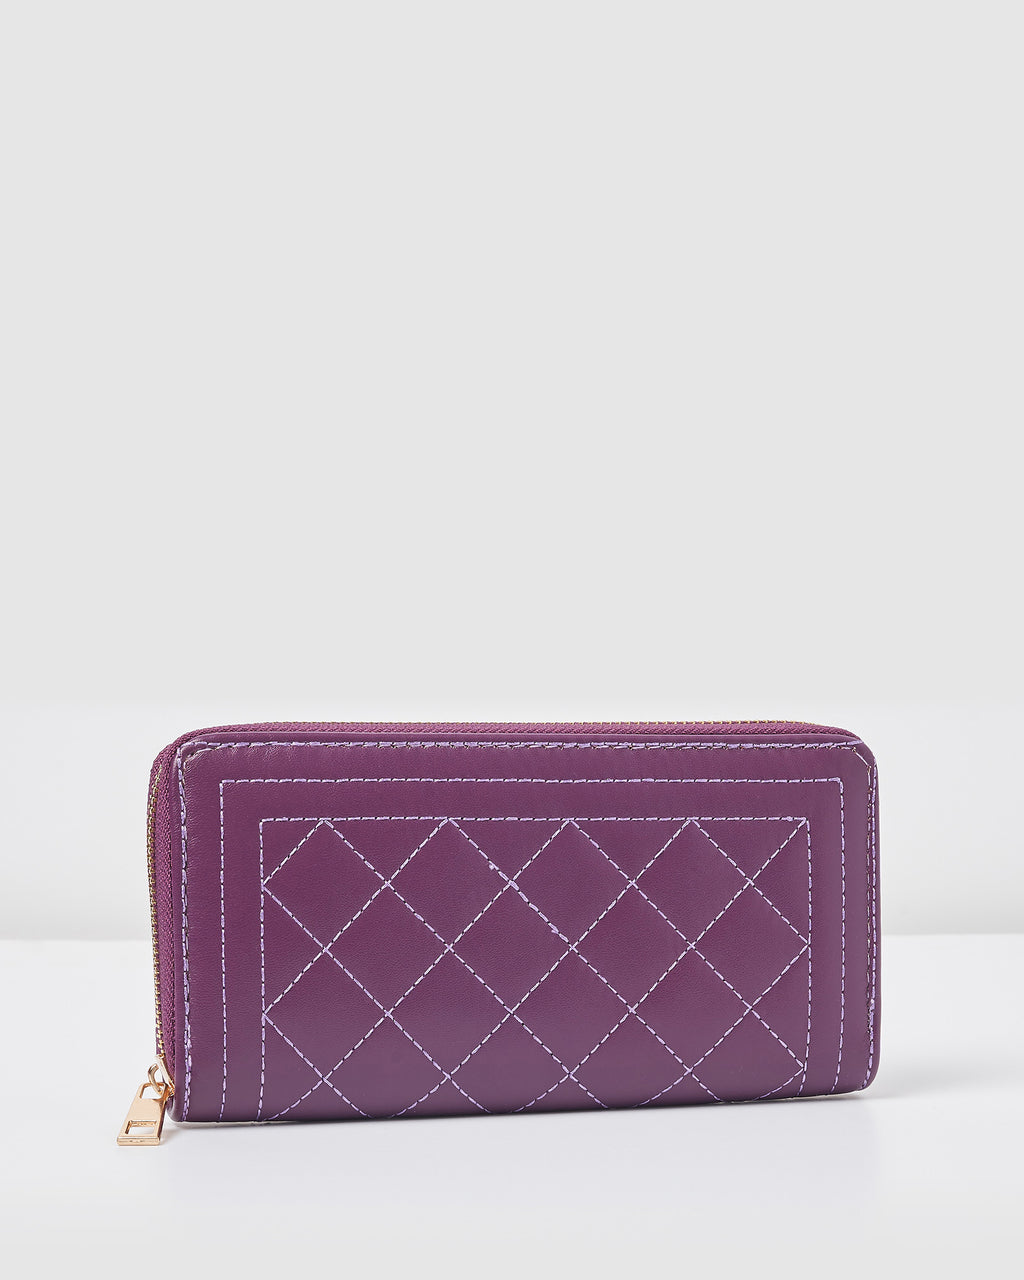 Izoa Frankie Wallet Purple